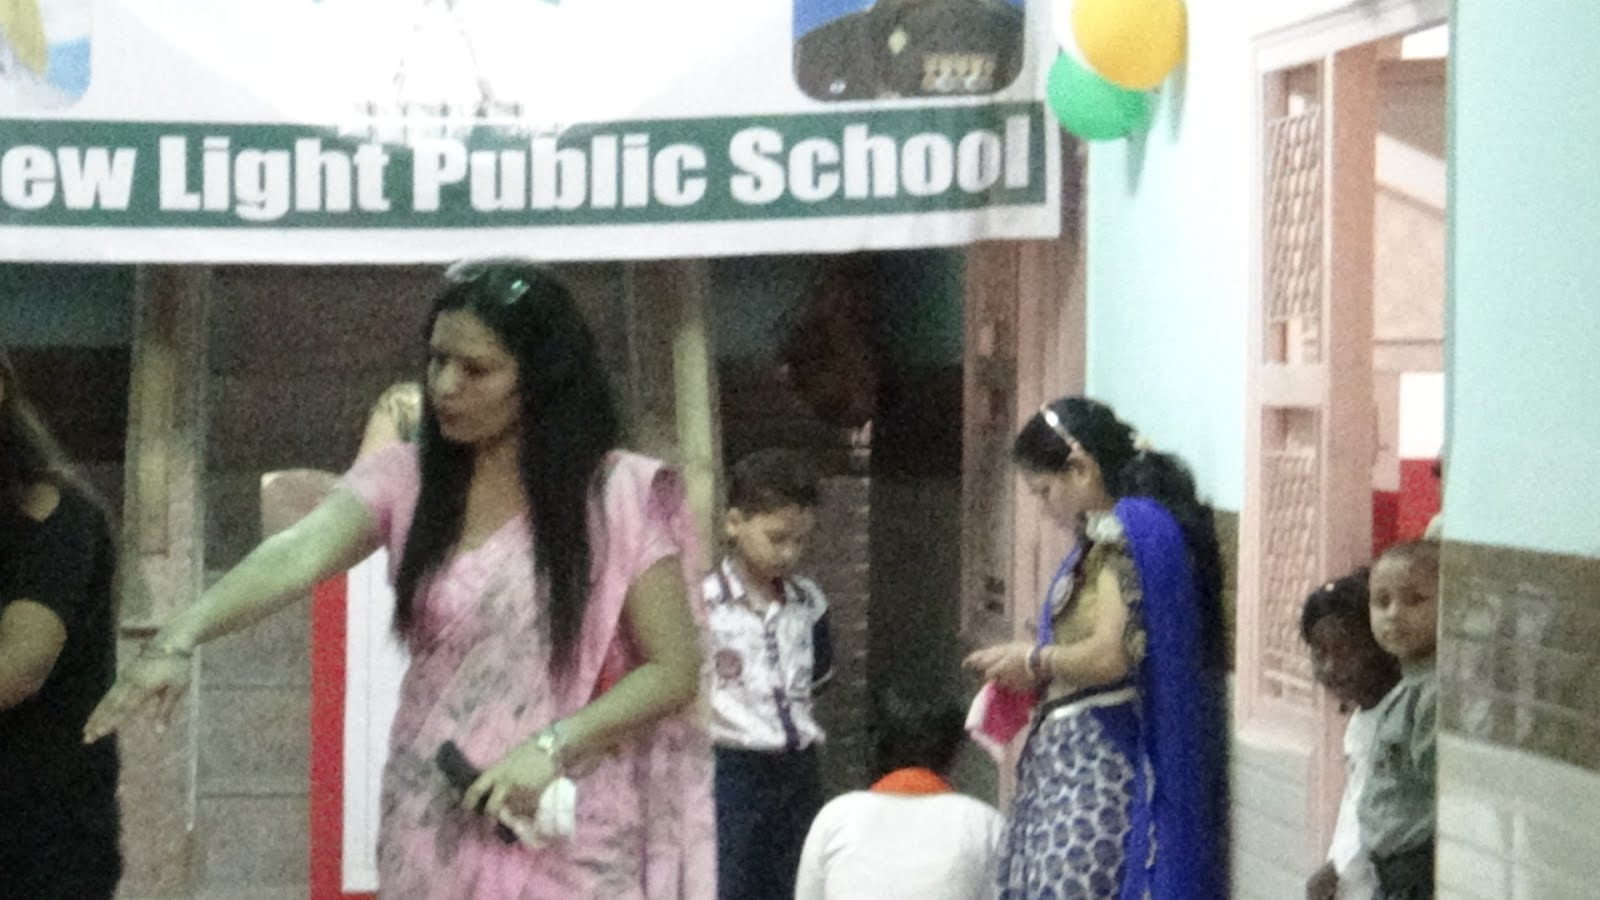 new light public school program in noida